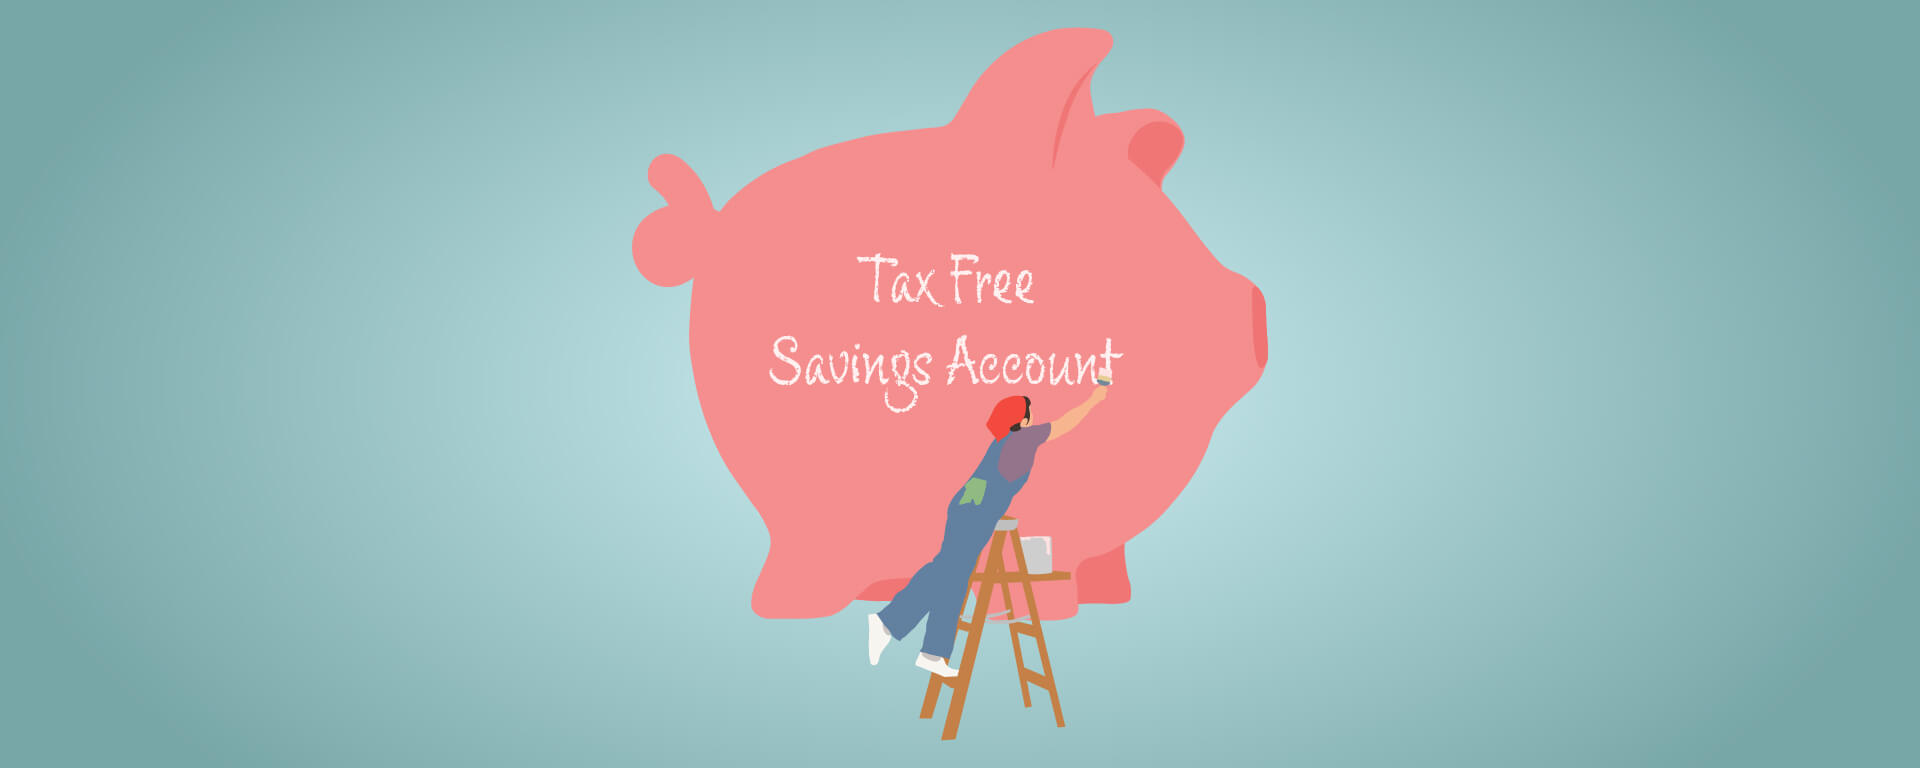 Tax-Free Savings Account: Best Retirement Plan